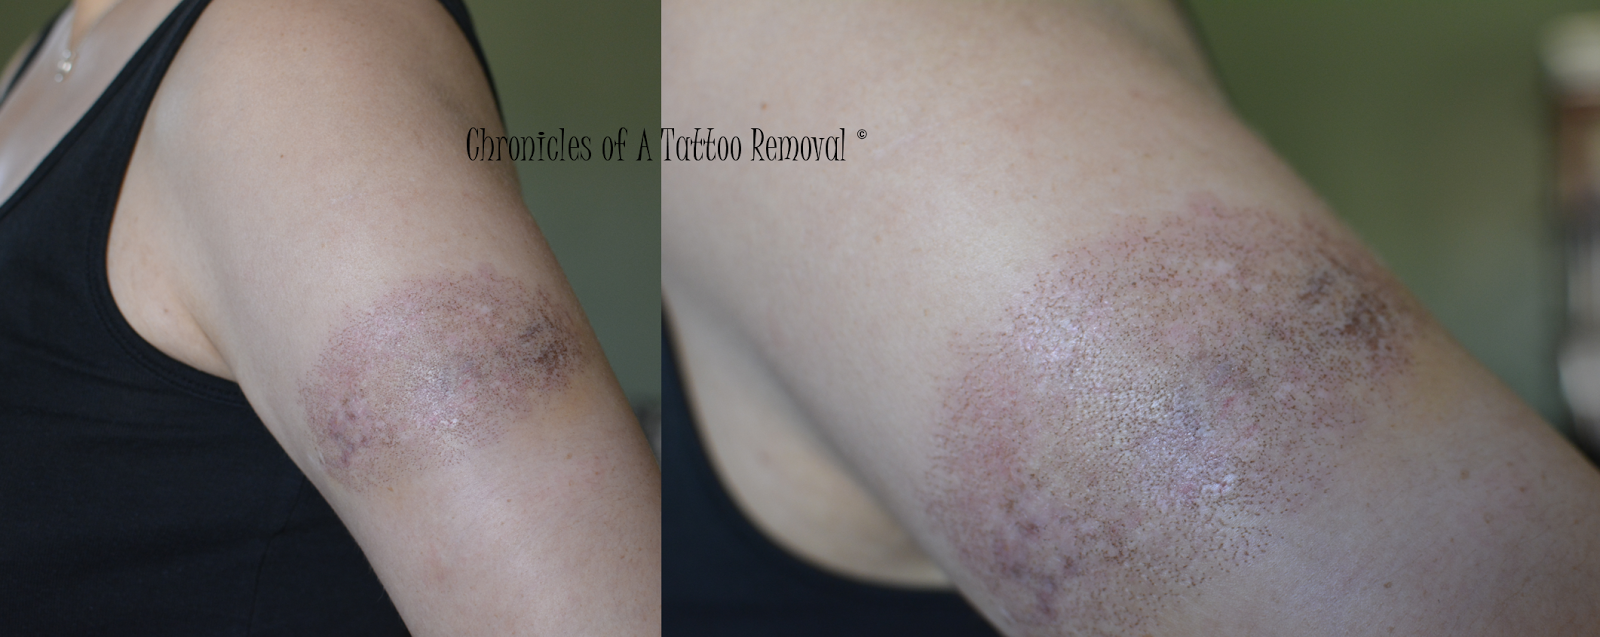 Chronicles of a Tattoo Removal